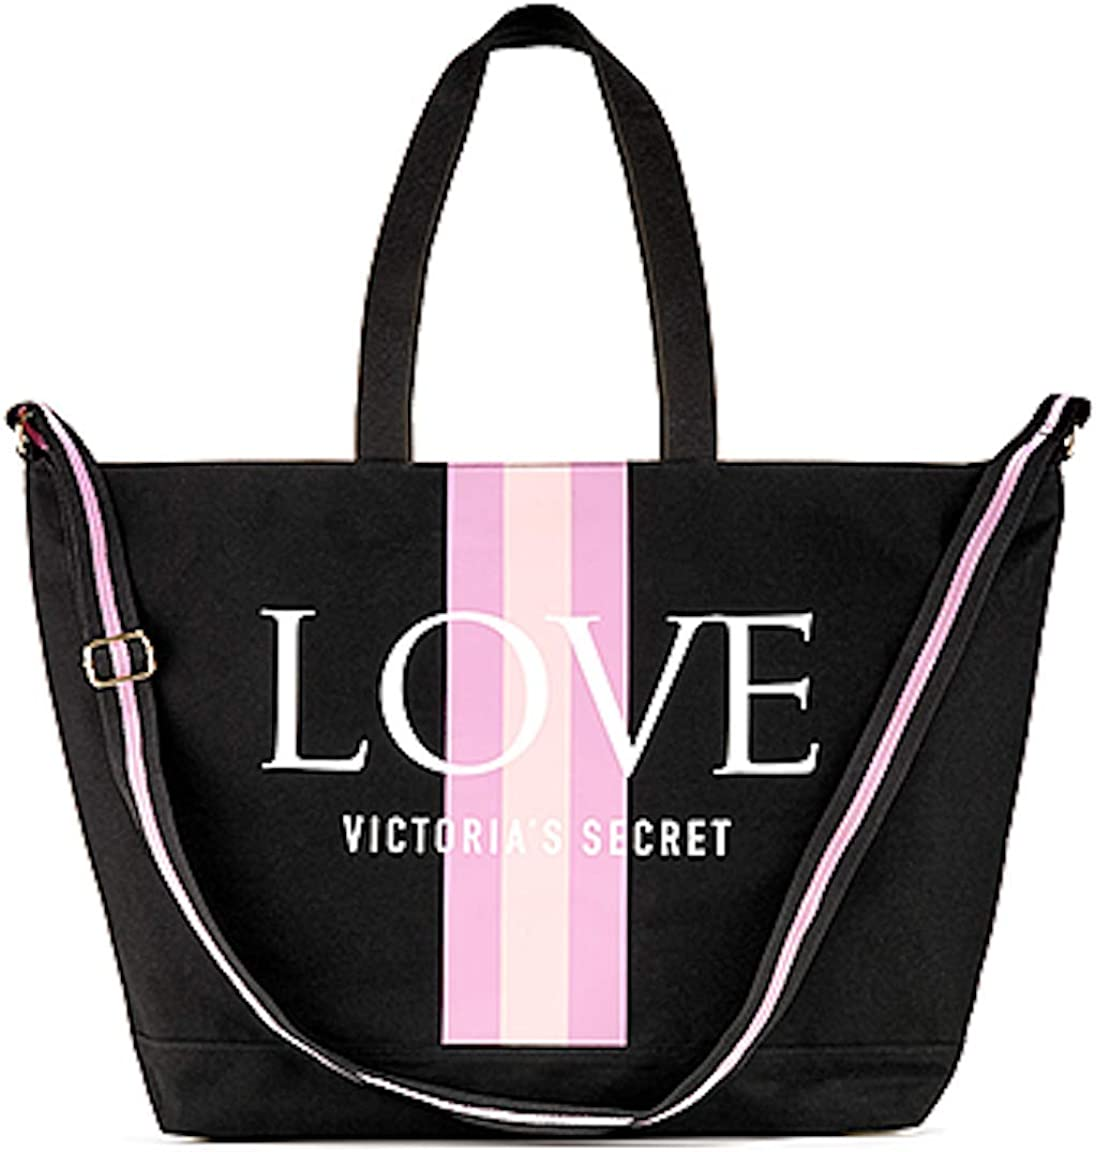 Victoria/'s Secret Beach Large Weekend Travel Tote Bag Pink//White Stripe